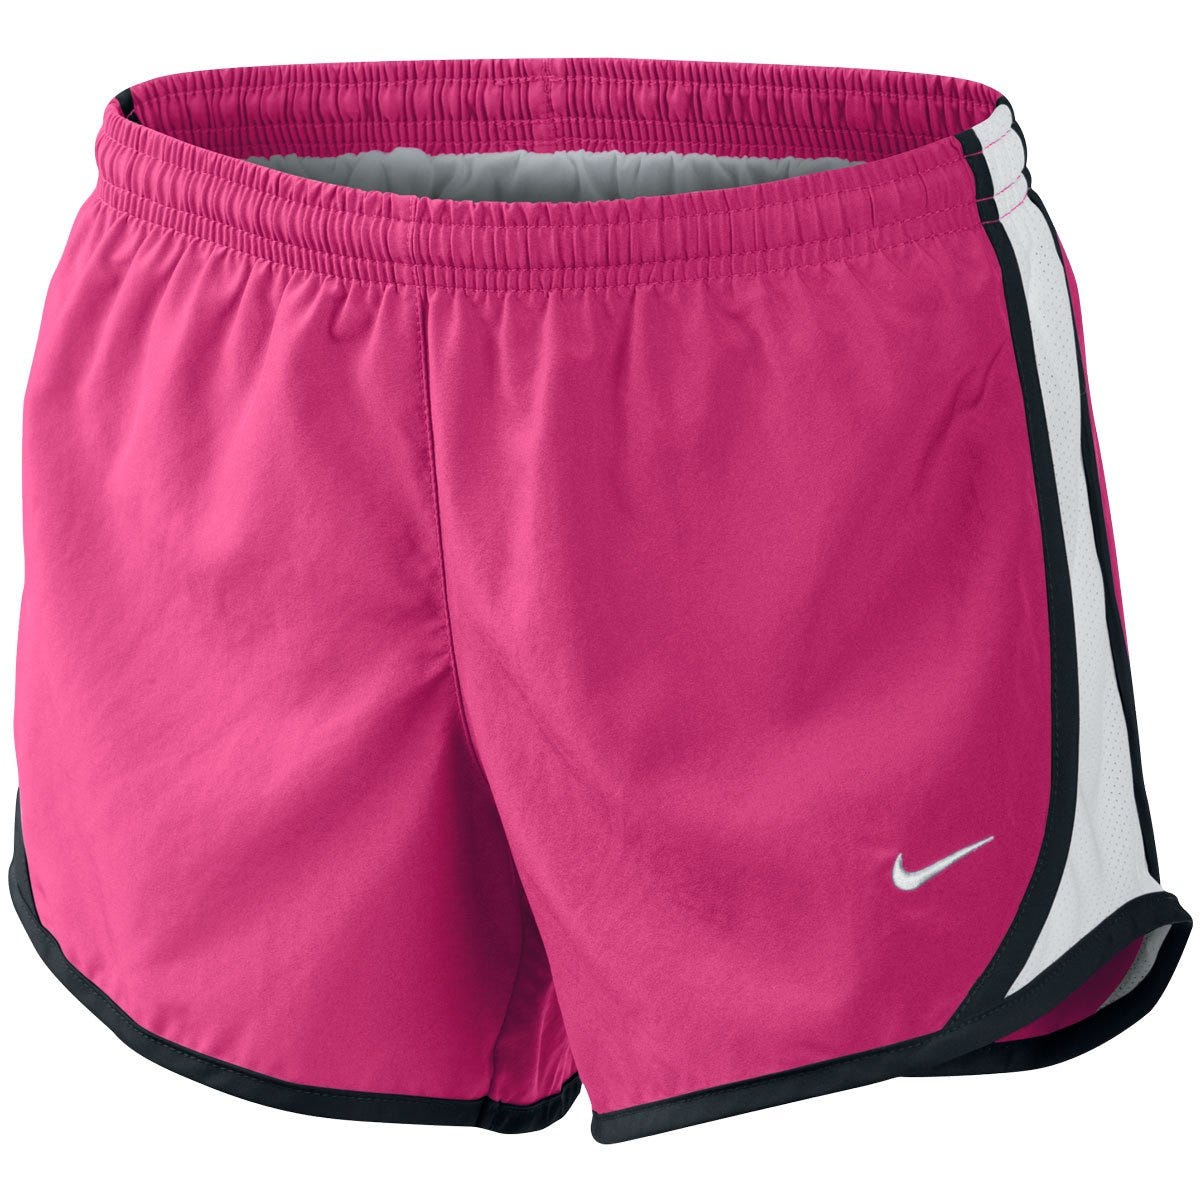 Nike Tempo 3.5in. Girl's Training Shorts